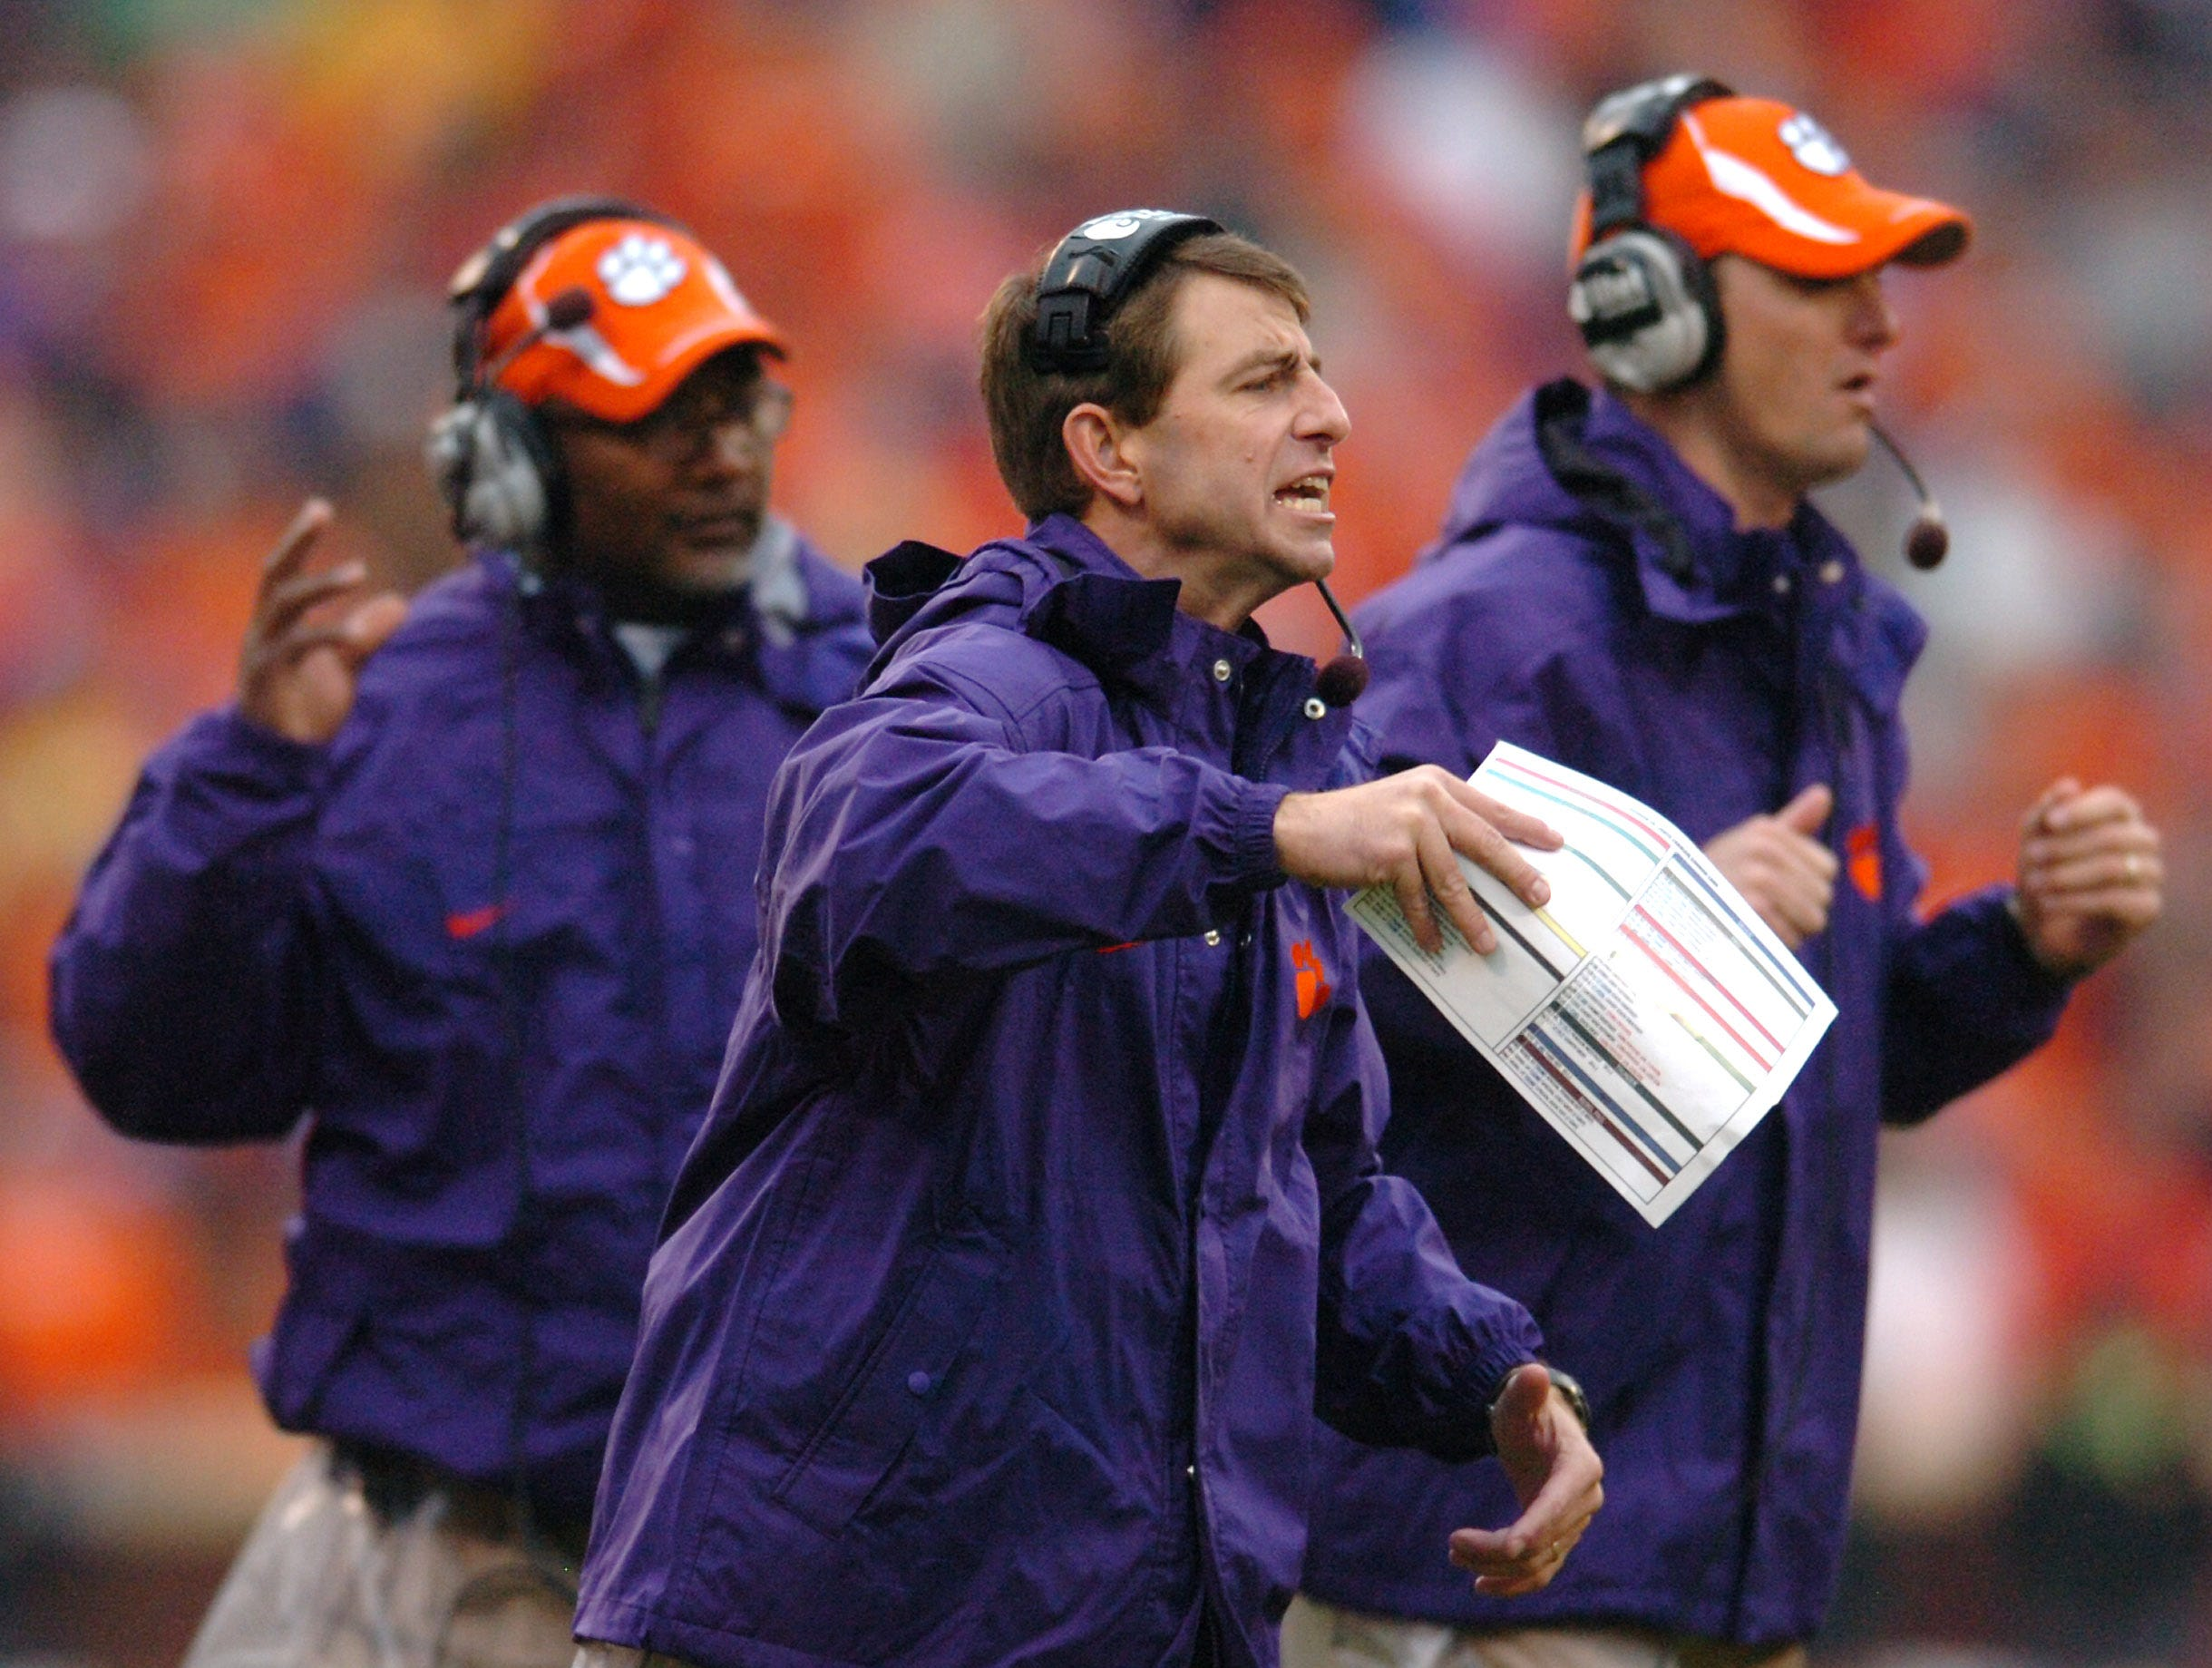 Clemson interim head coach Dabo Swinney coaches the Tigers as they play South Carolina during the 1st quarter Saturday, November 29, 2008 at Clemson's Memorial Stadium.